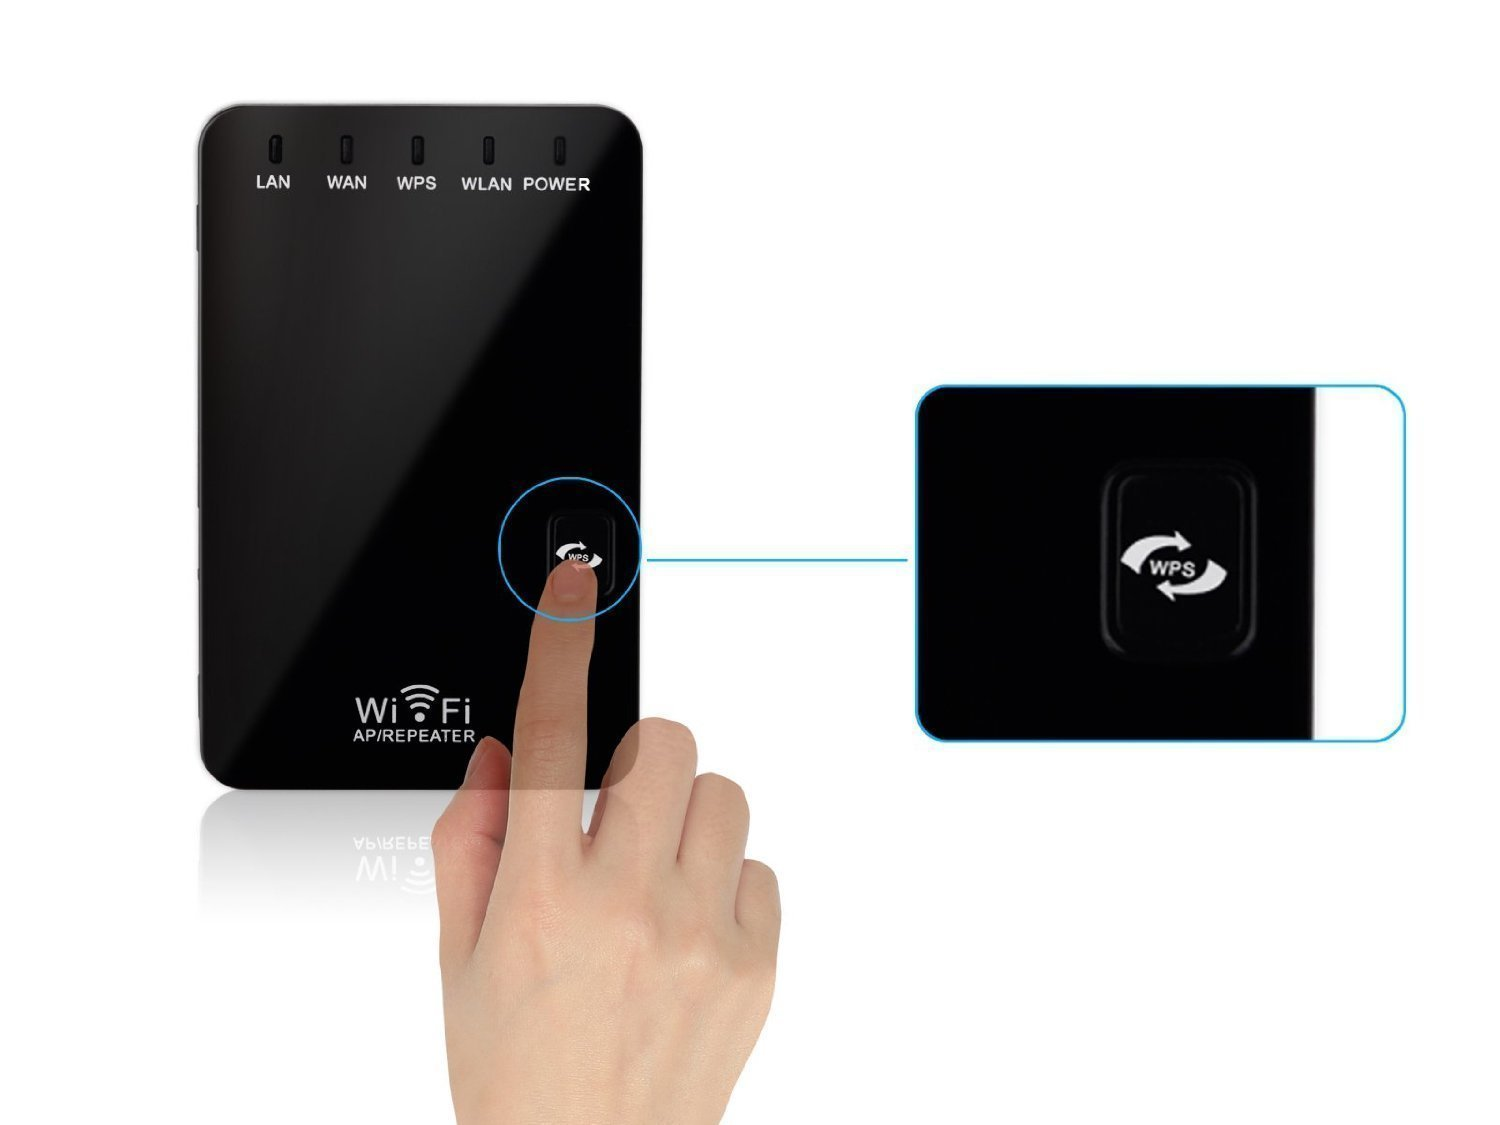 Mini Wireless Router, Wireless-N WiFi Router Repeater Range Extender / Access Point with Ethernet Port for Wired Device wifi signal booster (Black -WKG)